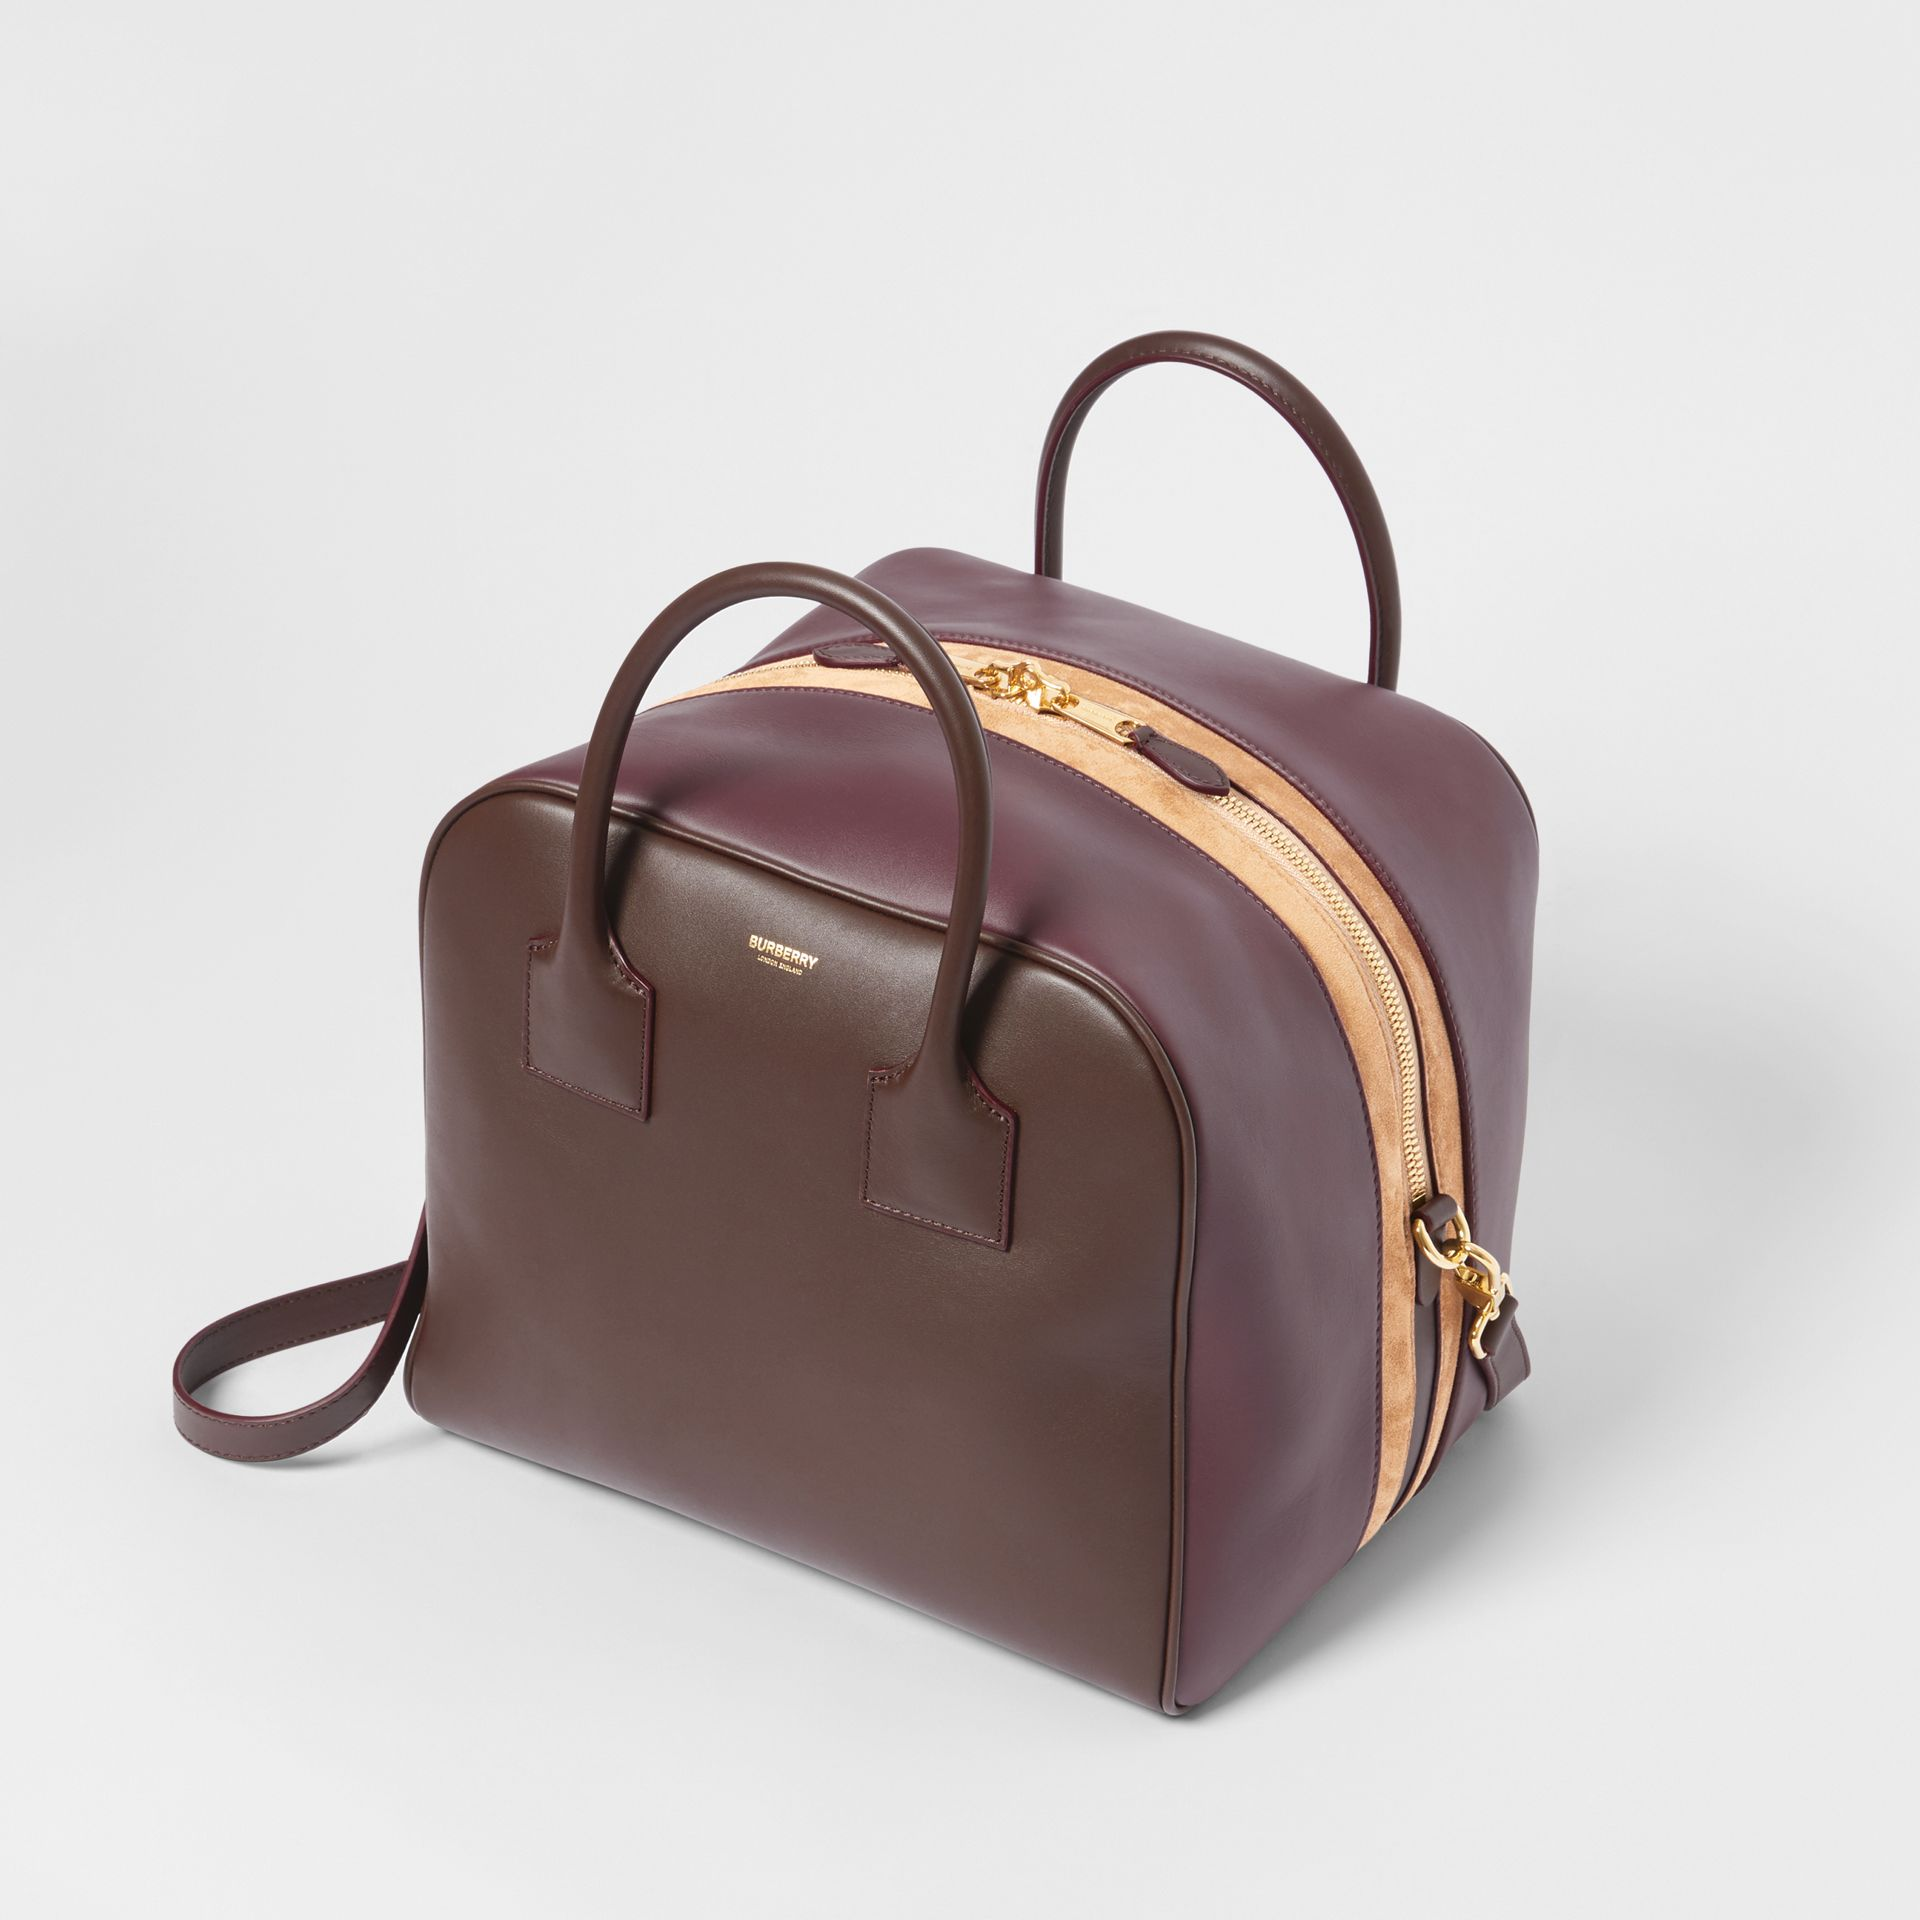 Medium Leather and Suede Cube Bag in Mahogany - Women | Burberry United Kingdom - gallery image 3